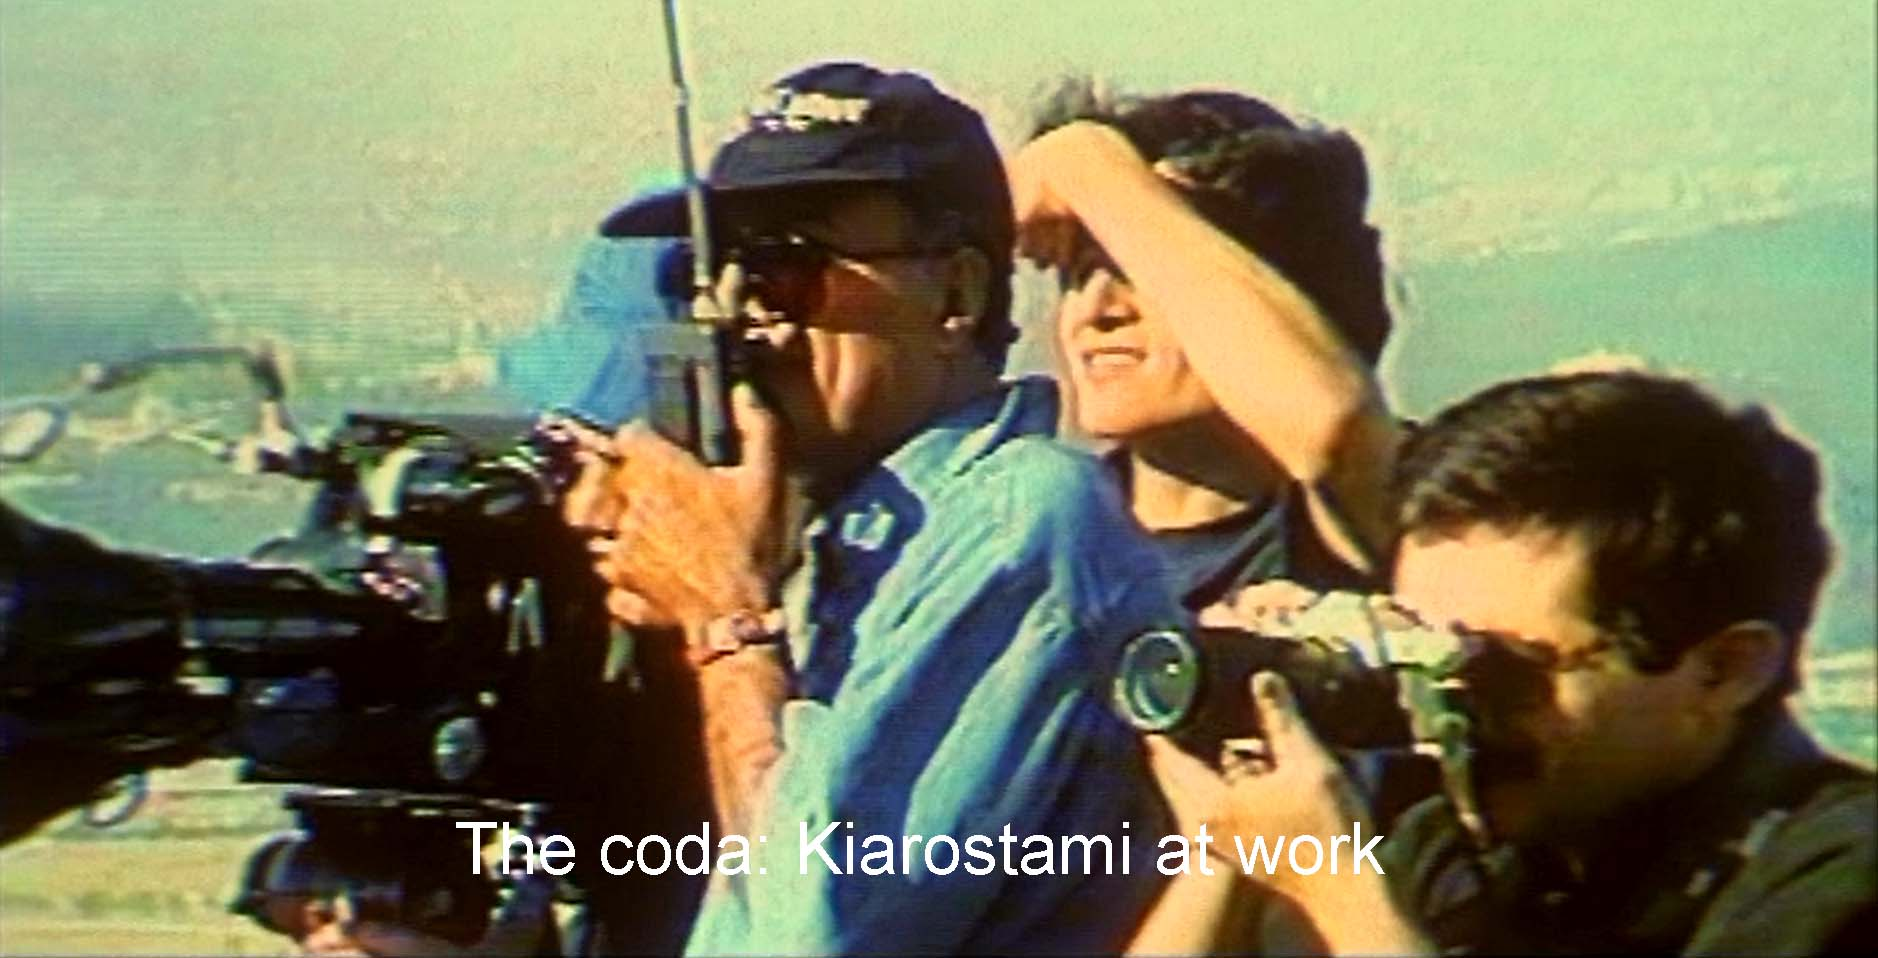 The coda: Kiarostami at work